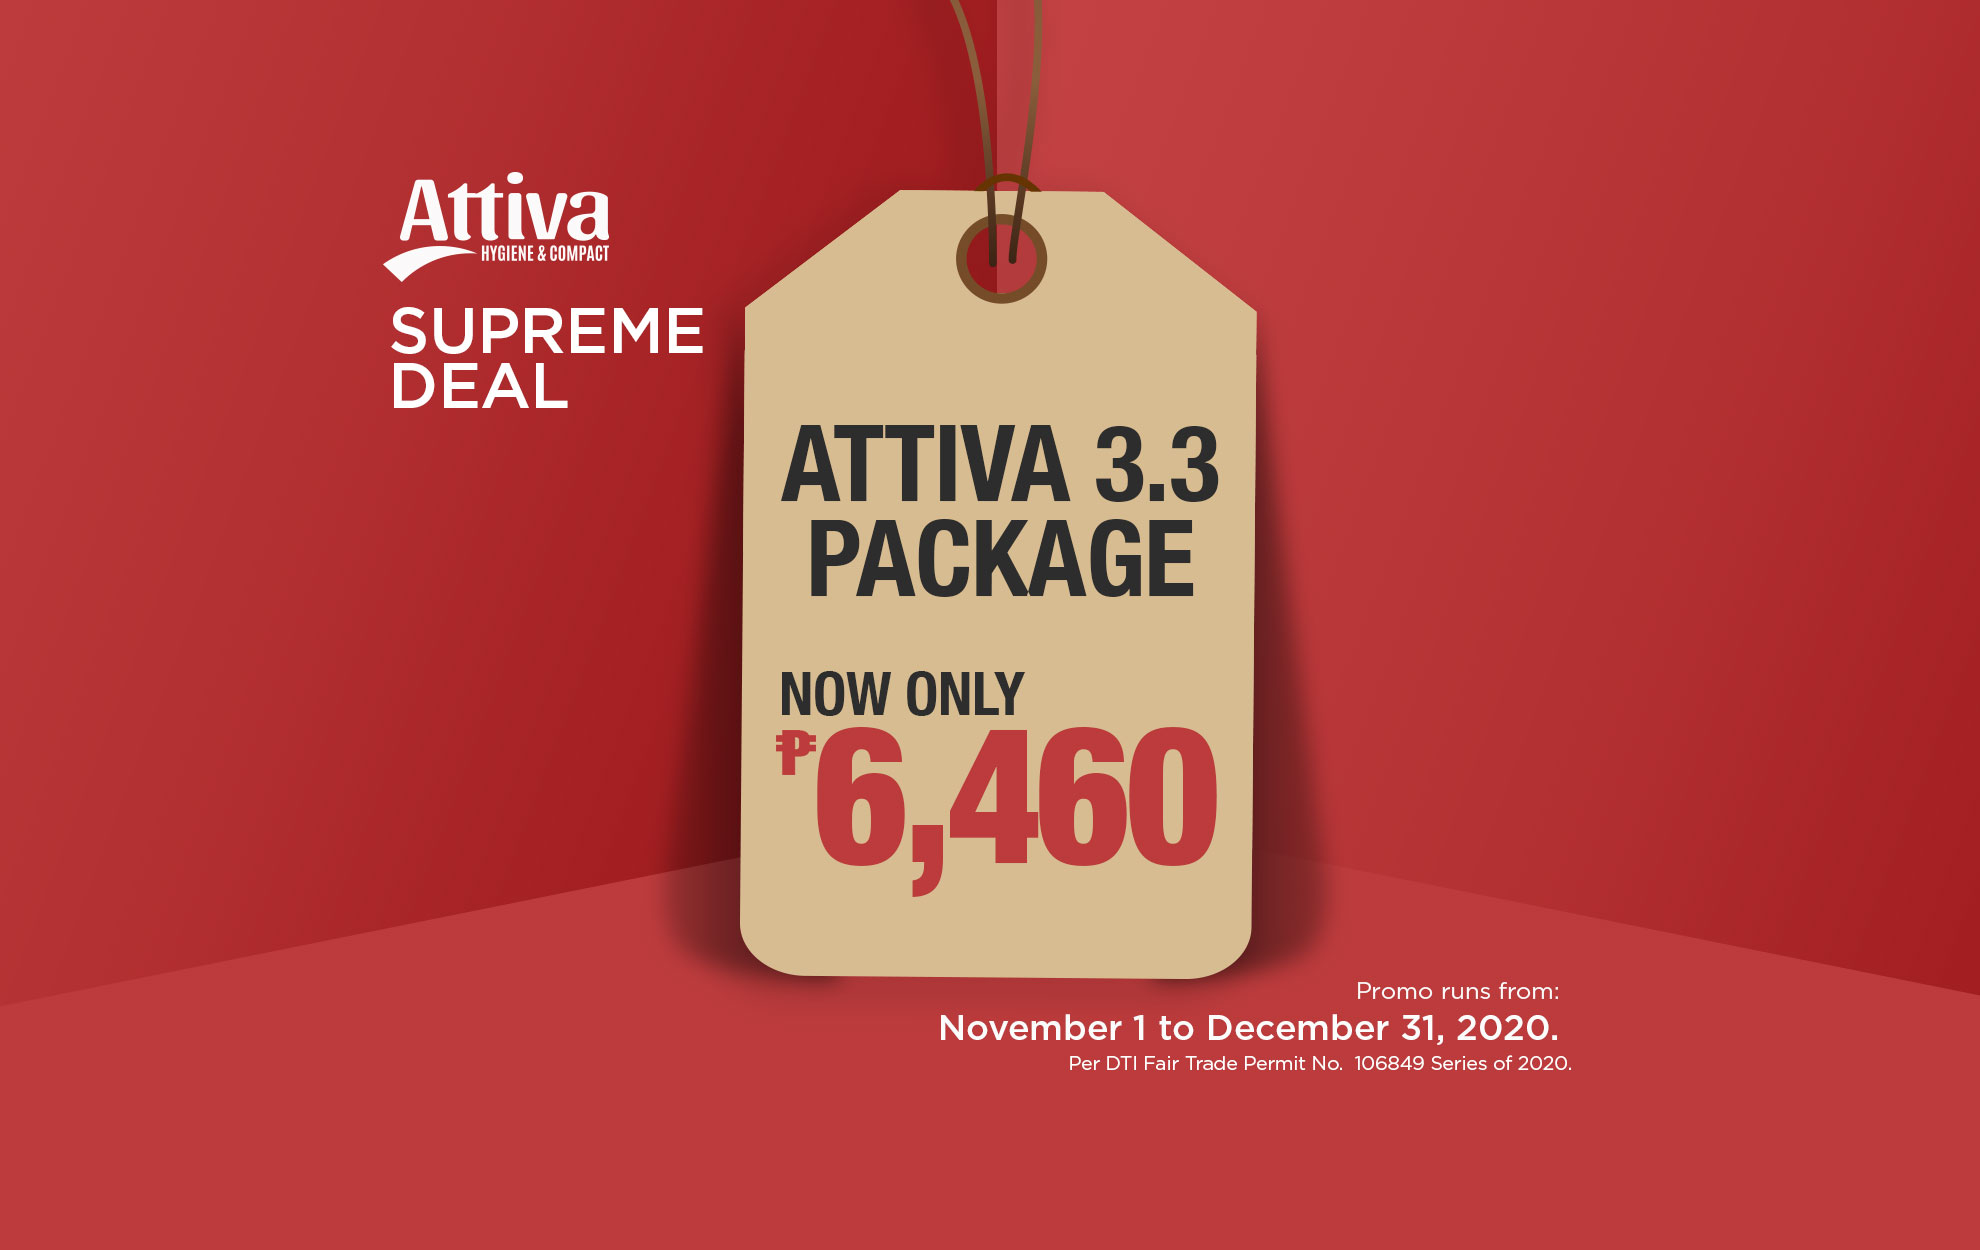 Attive 3.3 package promo